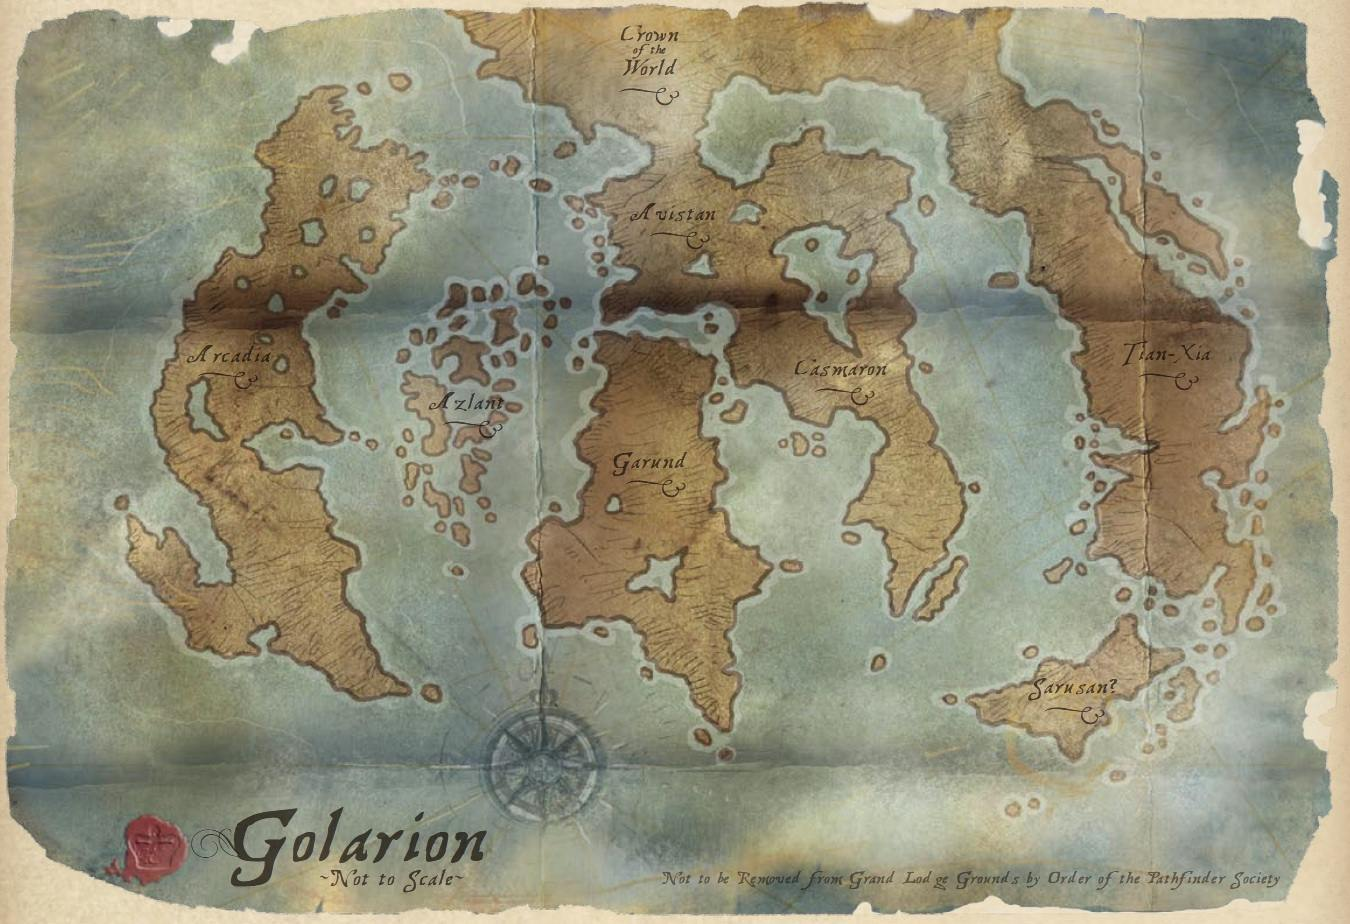 Golarion_world_map.jpg